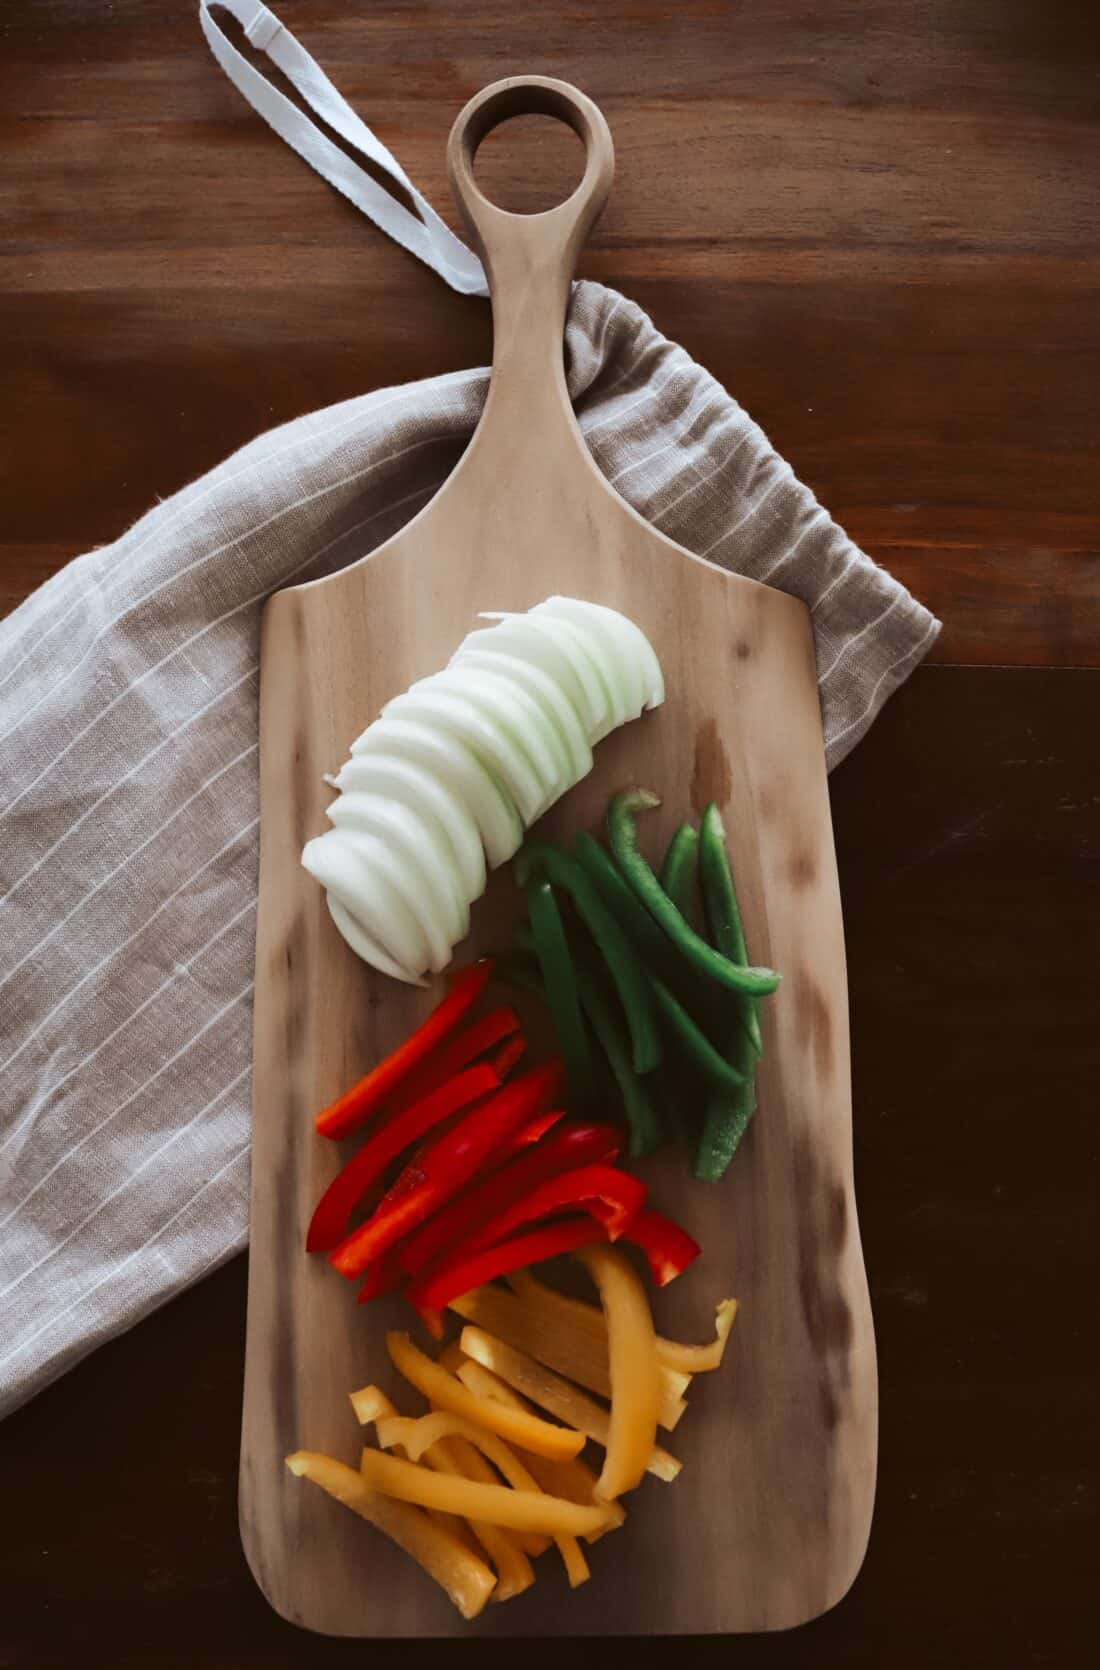 sliced peppers and onion on a wooden cutting board